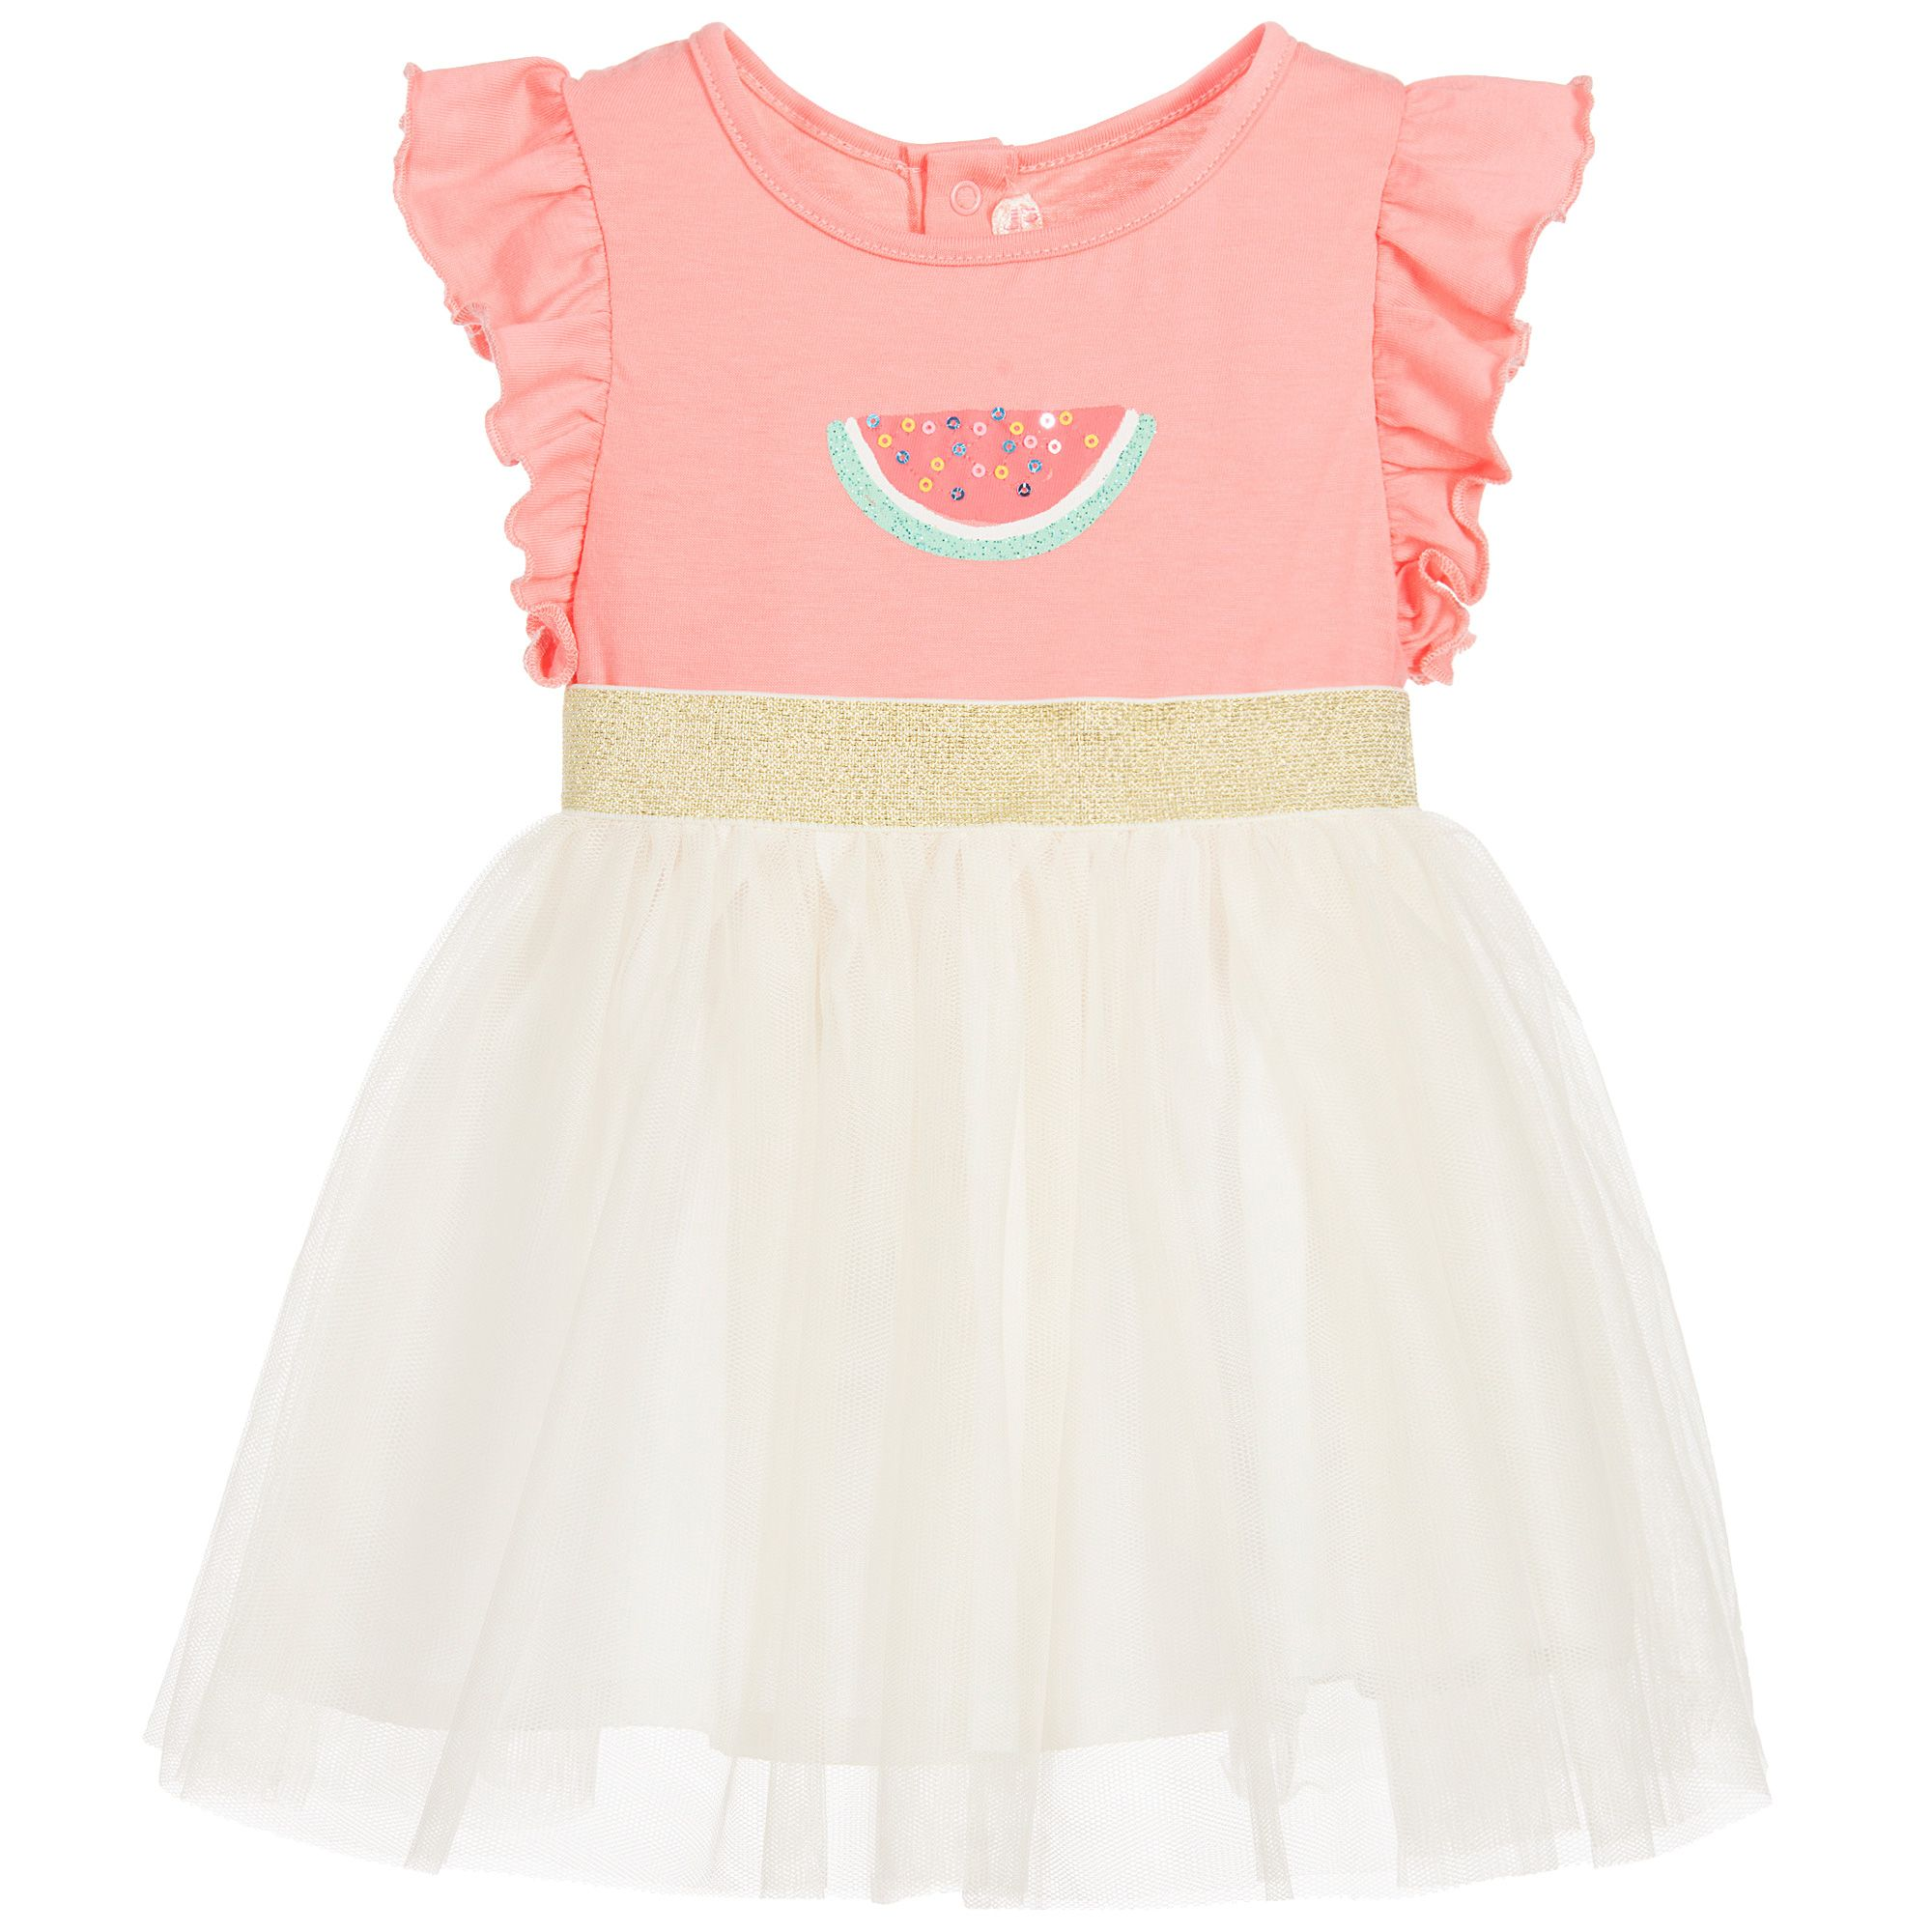 Baby girls pink and ivory dress by Billieblush The bodice is made